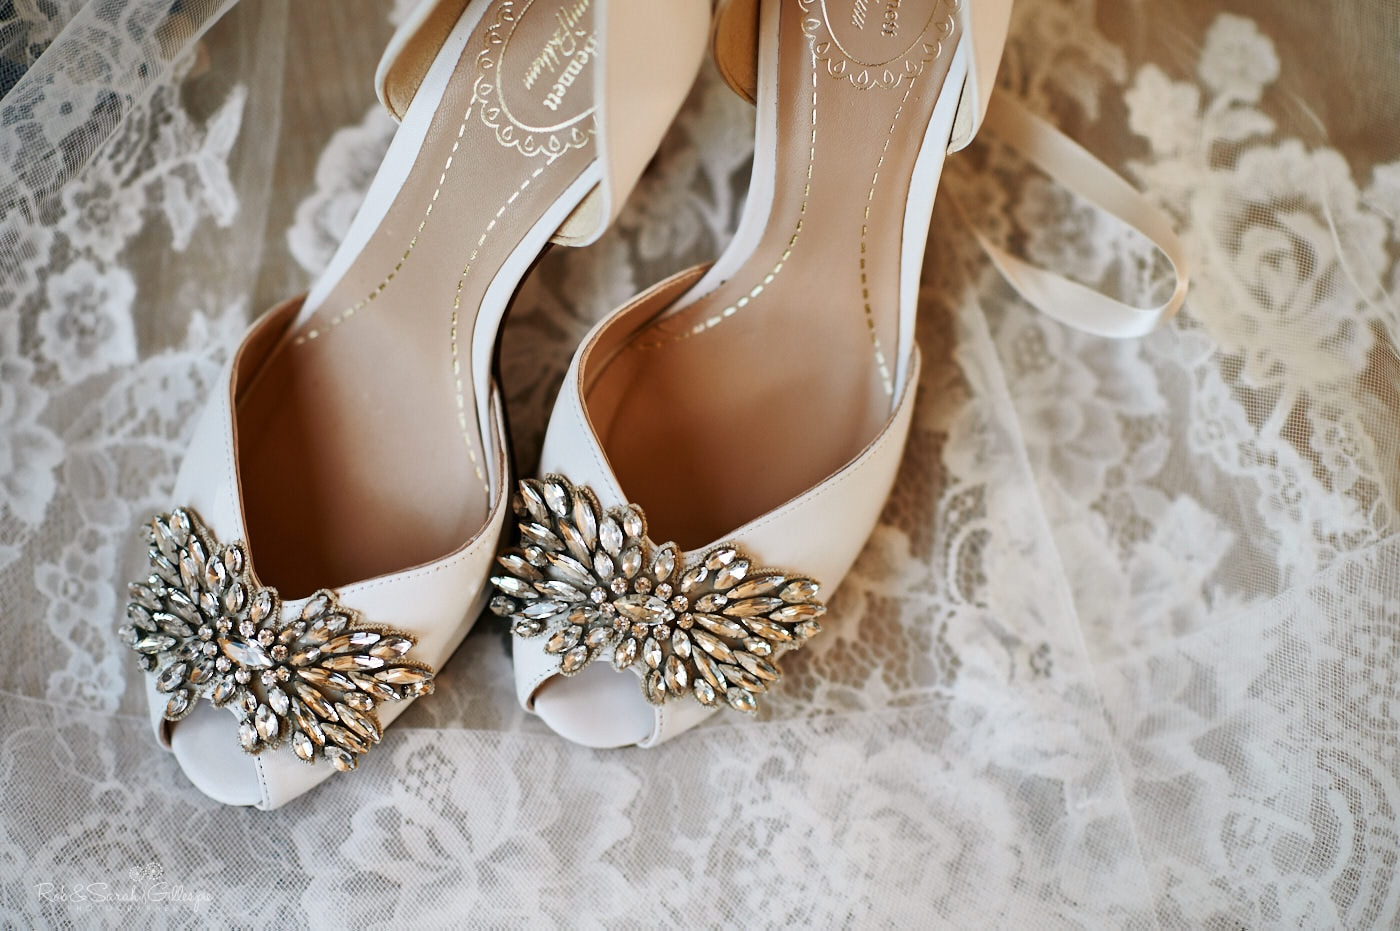 Bridal shoes with detailed design